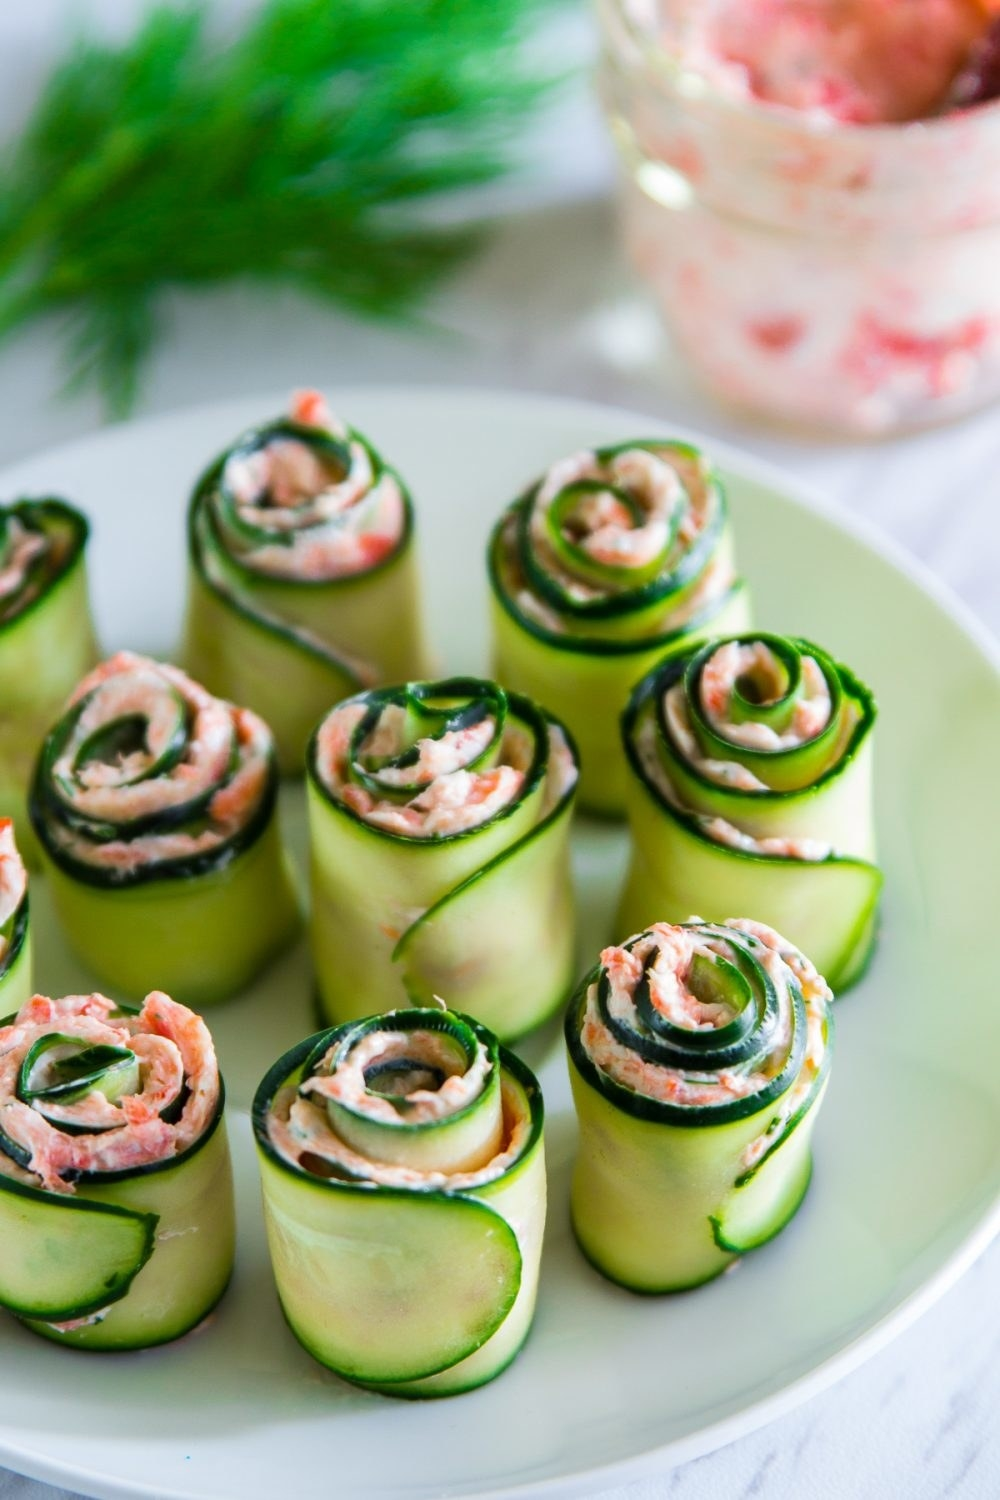 A plate of cucumber roll-ups filled with salmon cream cheese spread.